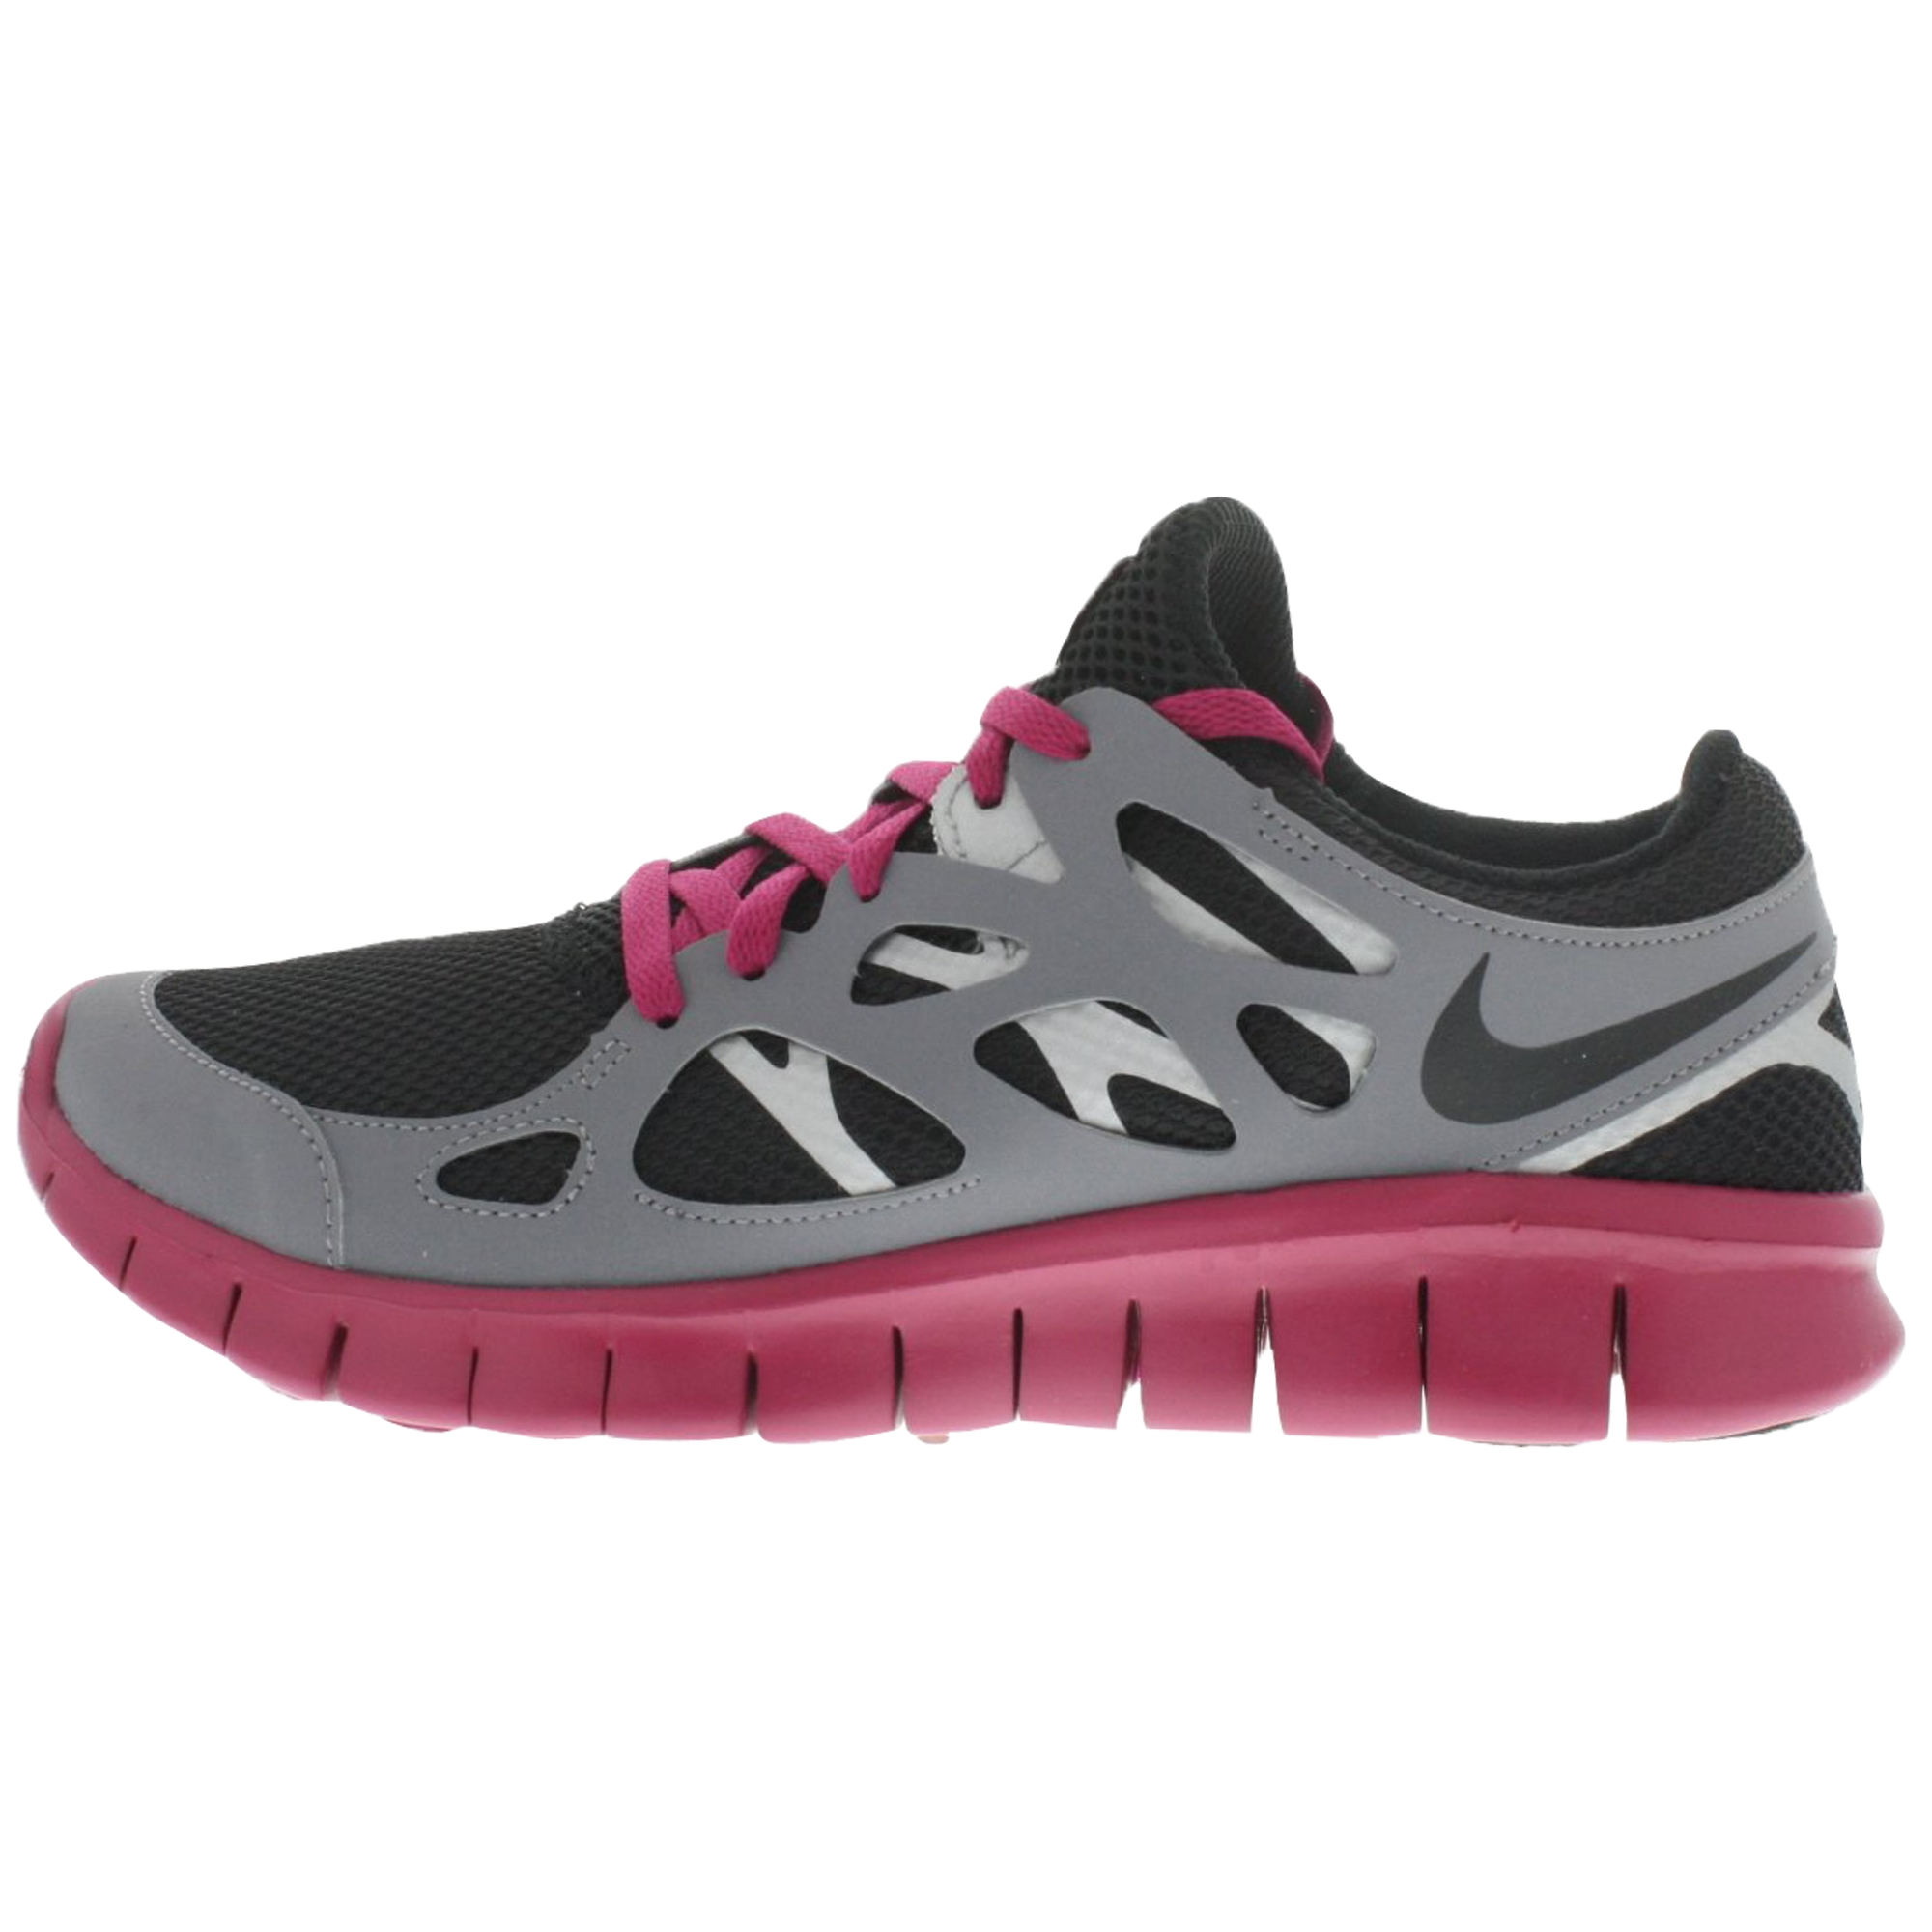 Cheap Nike Free Run 3 Coral Shoes Wheretoget